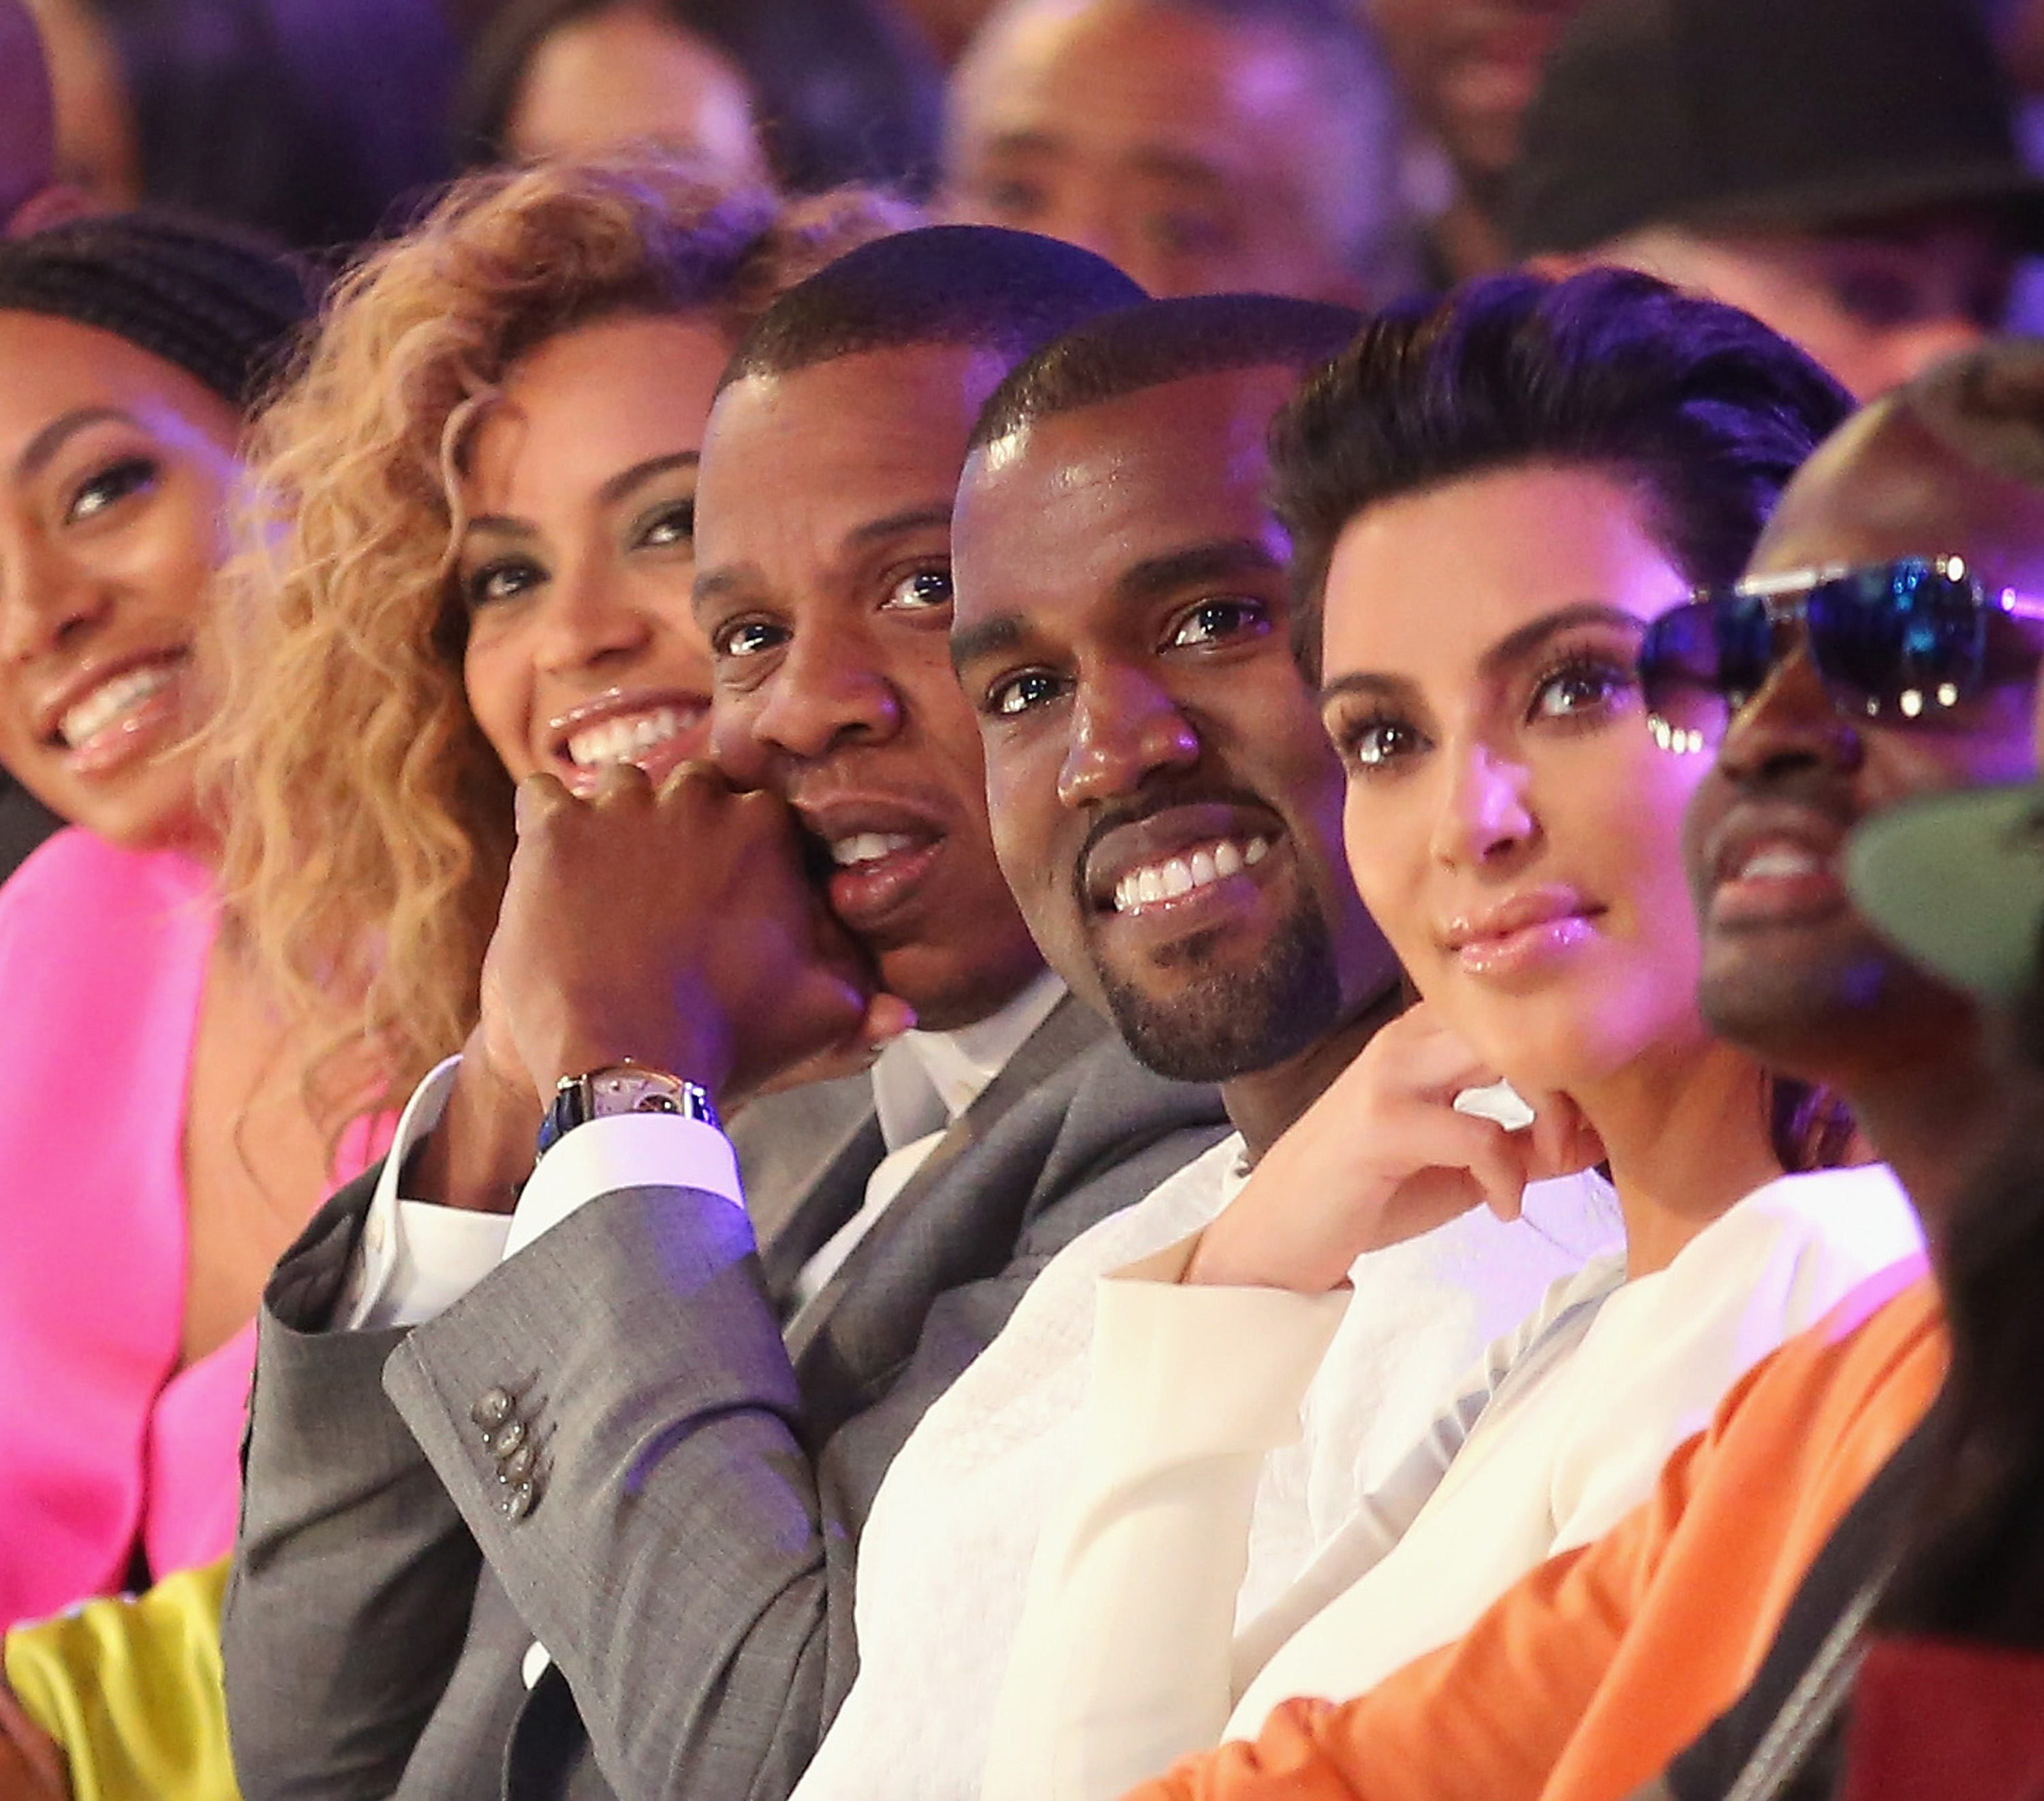 How's this for a double date? Kimye sat next to Mr. and Mrs. Carter (all hail queen Bey) at the BET awards in July 2012.